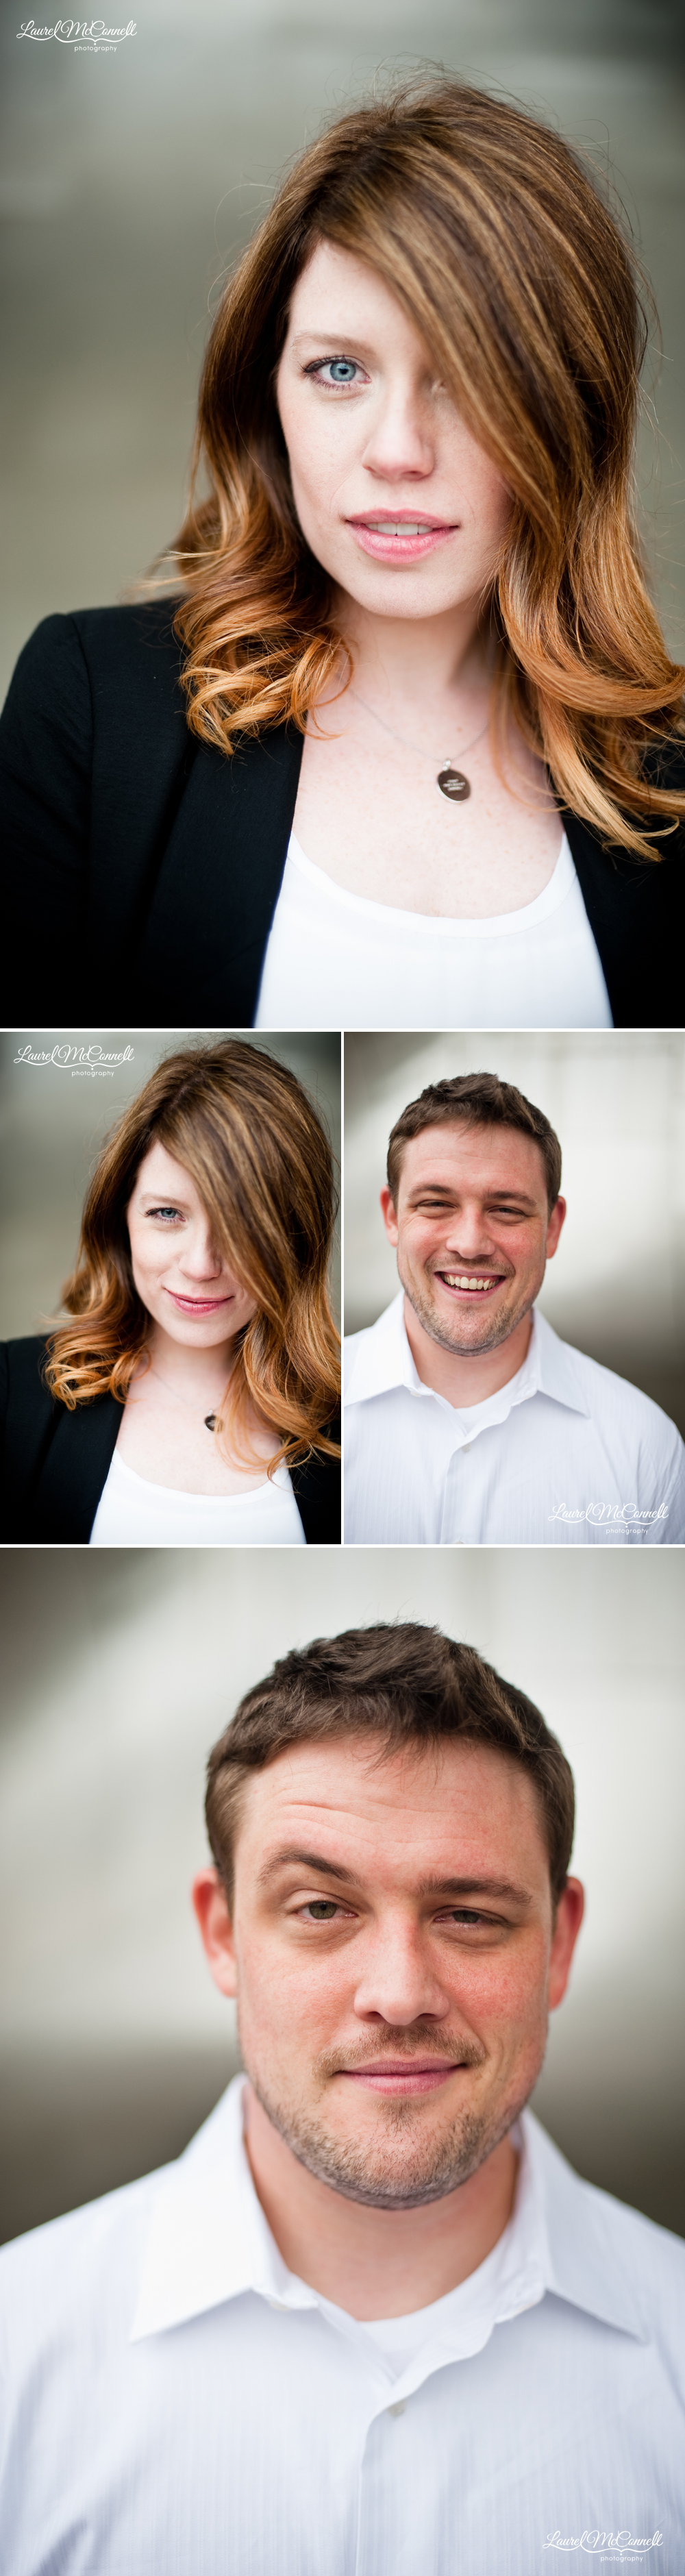 fun head shot portraits of the newly engaged happy couple